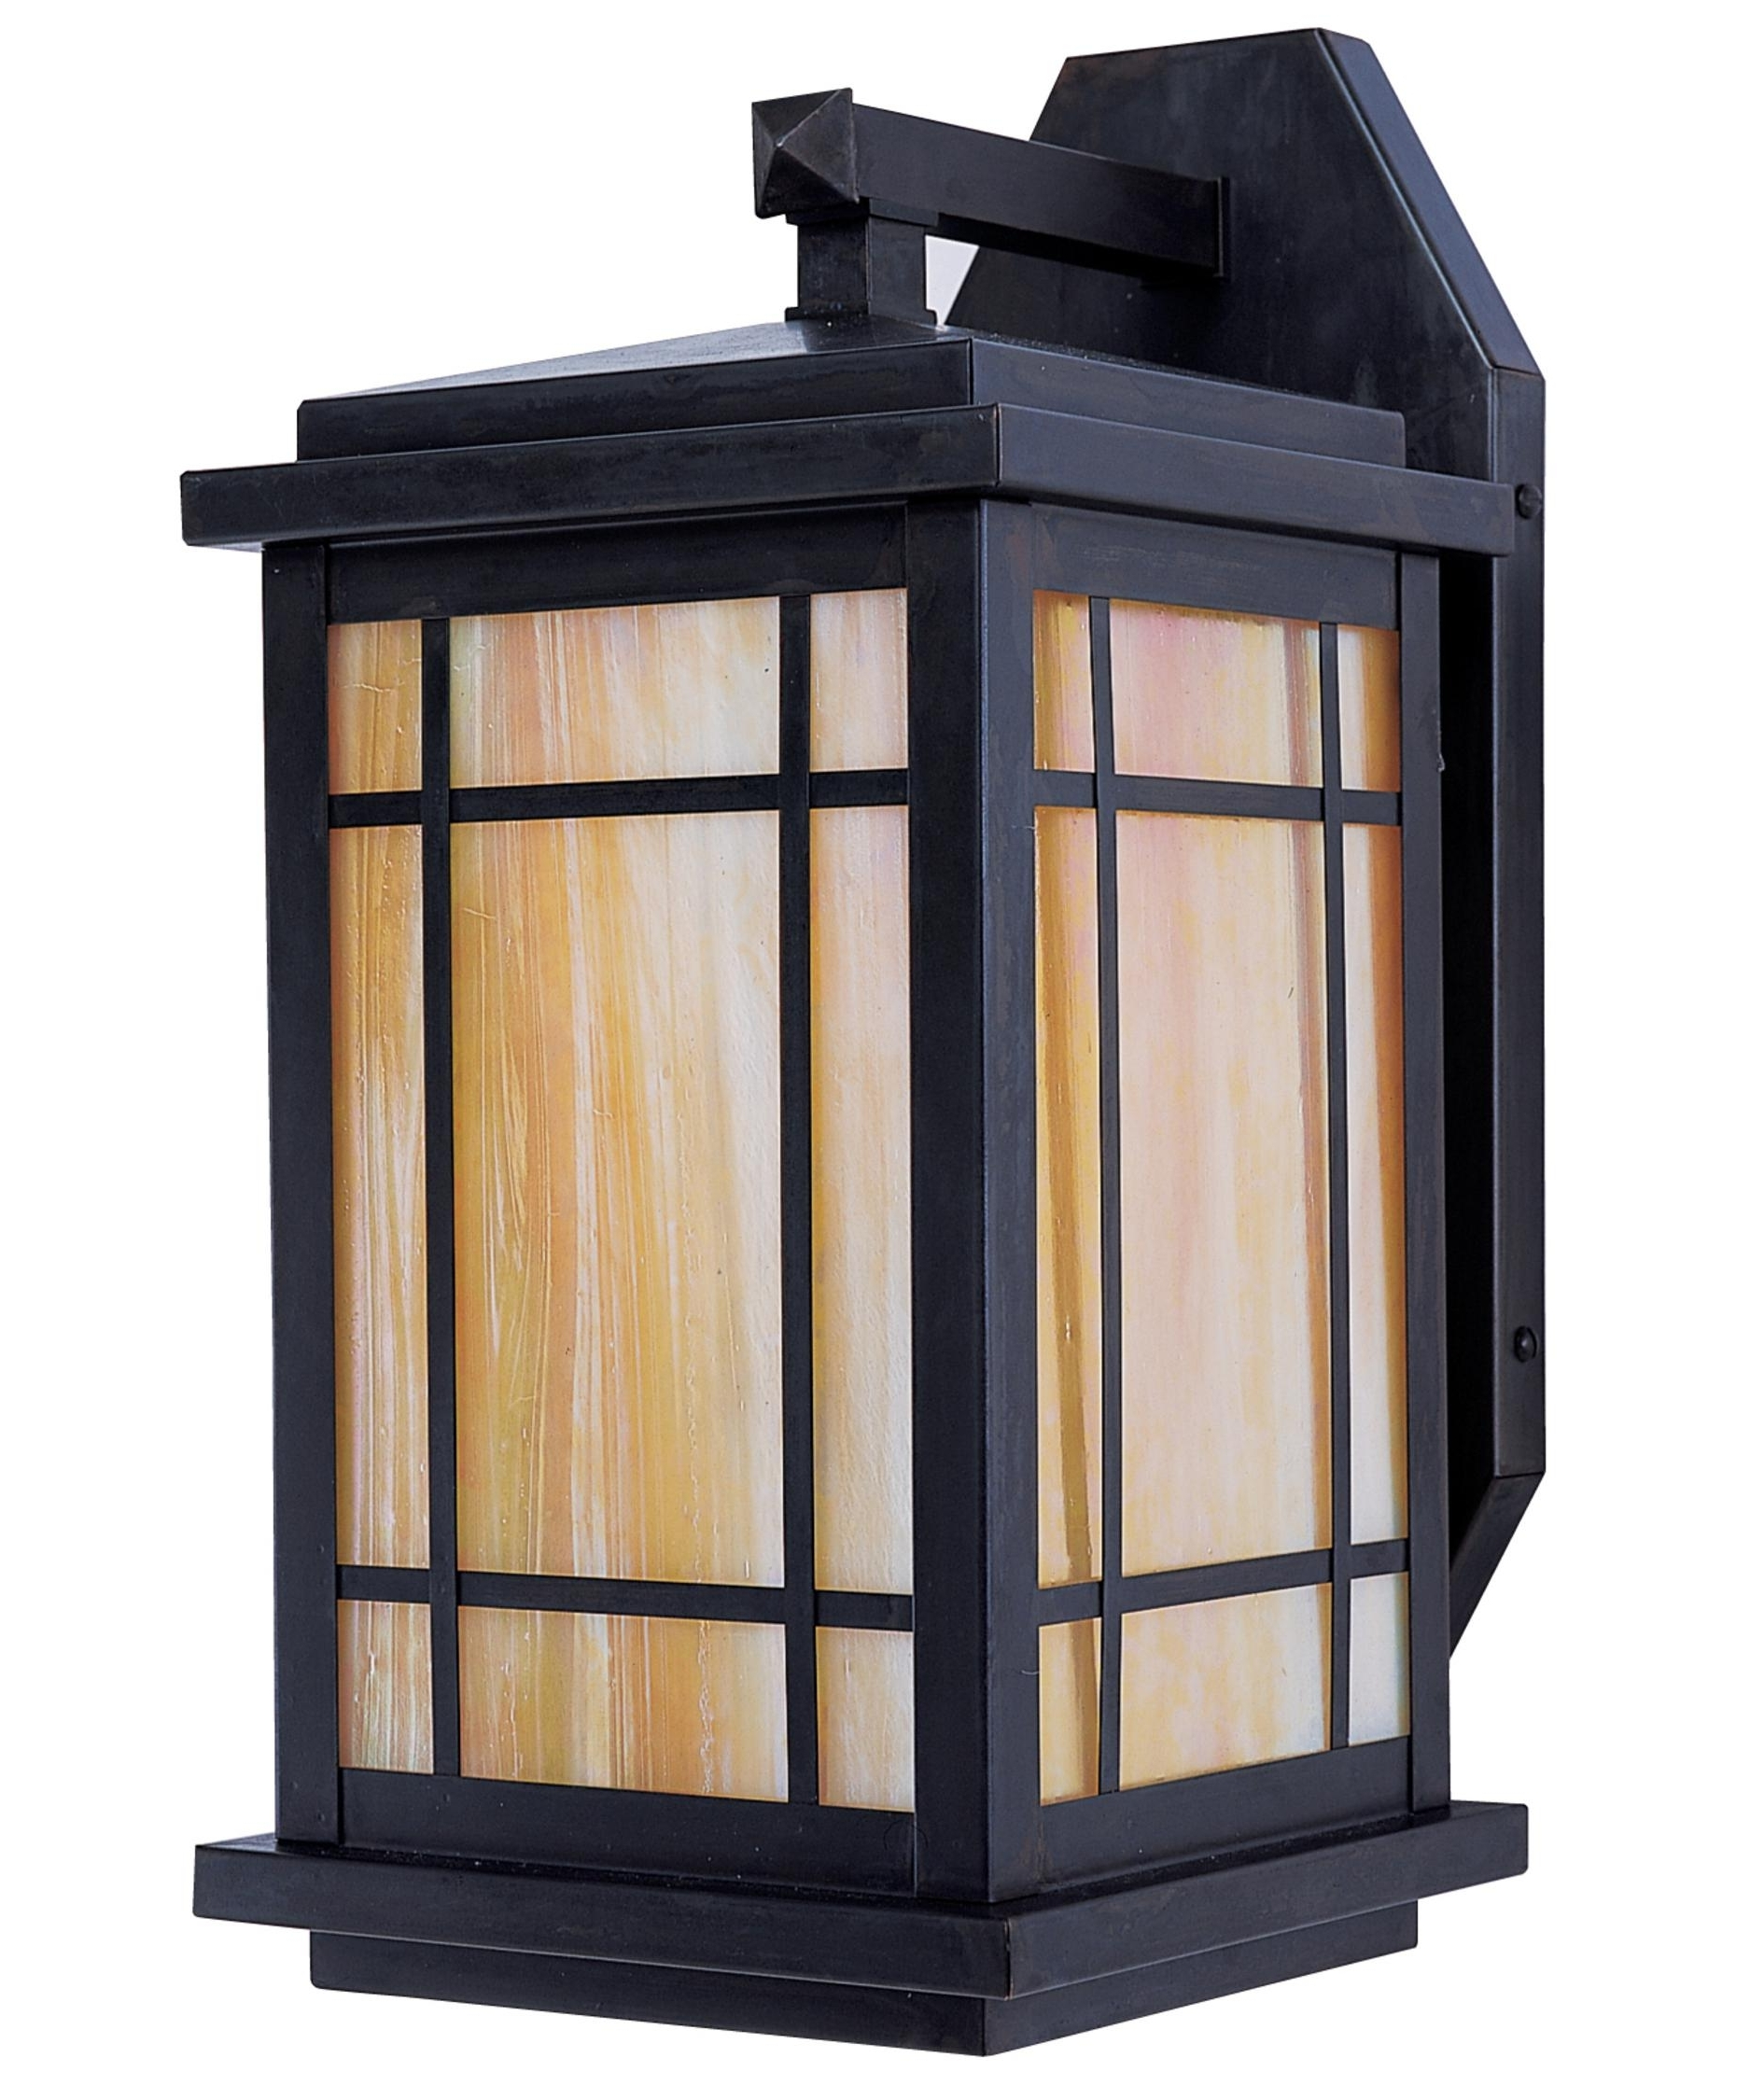 Most Up To Date Craftsman Outdoor Wall Lighting With Regard To Arroyo Craftsman Avb 8 Avenue 8 Inch Wide 1 Light Outdoor Wall Light (View 11 of 20)